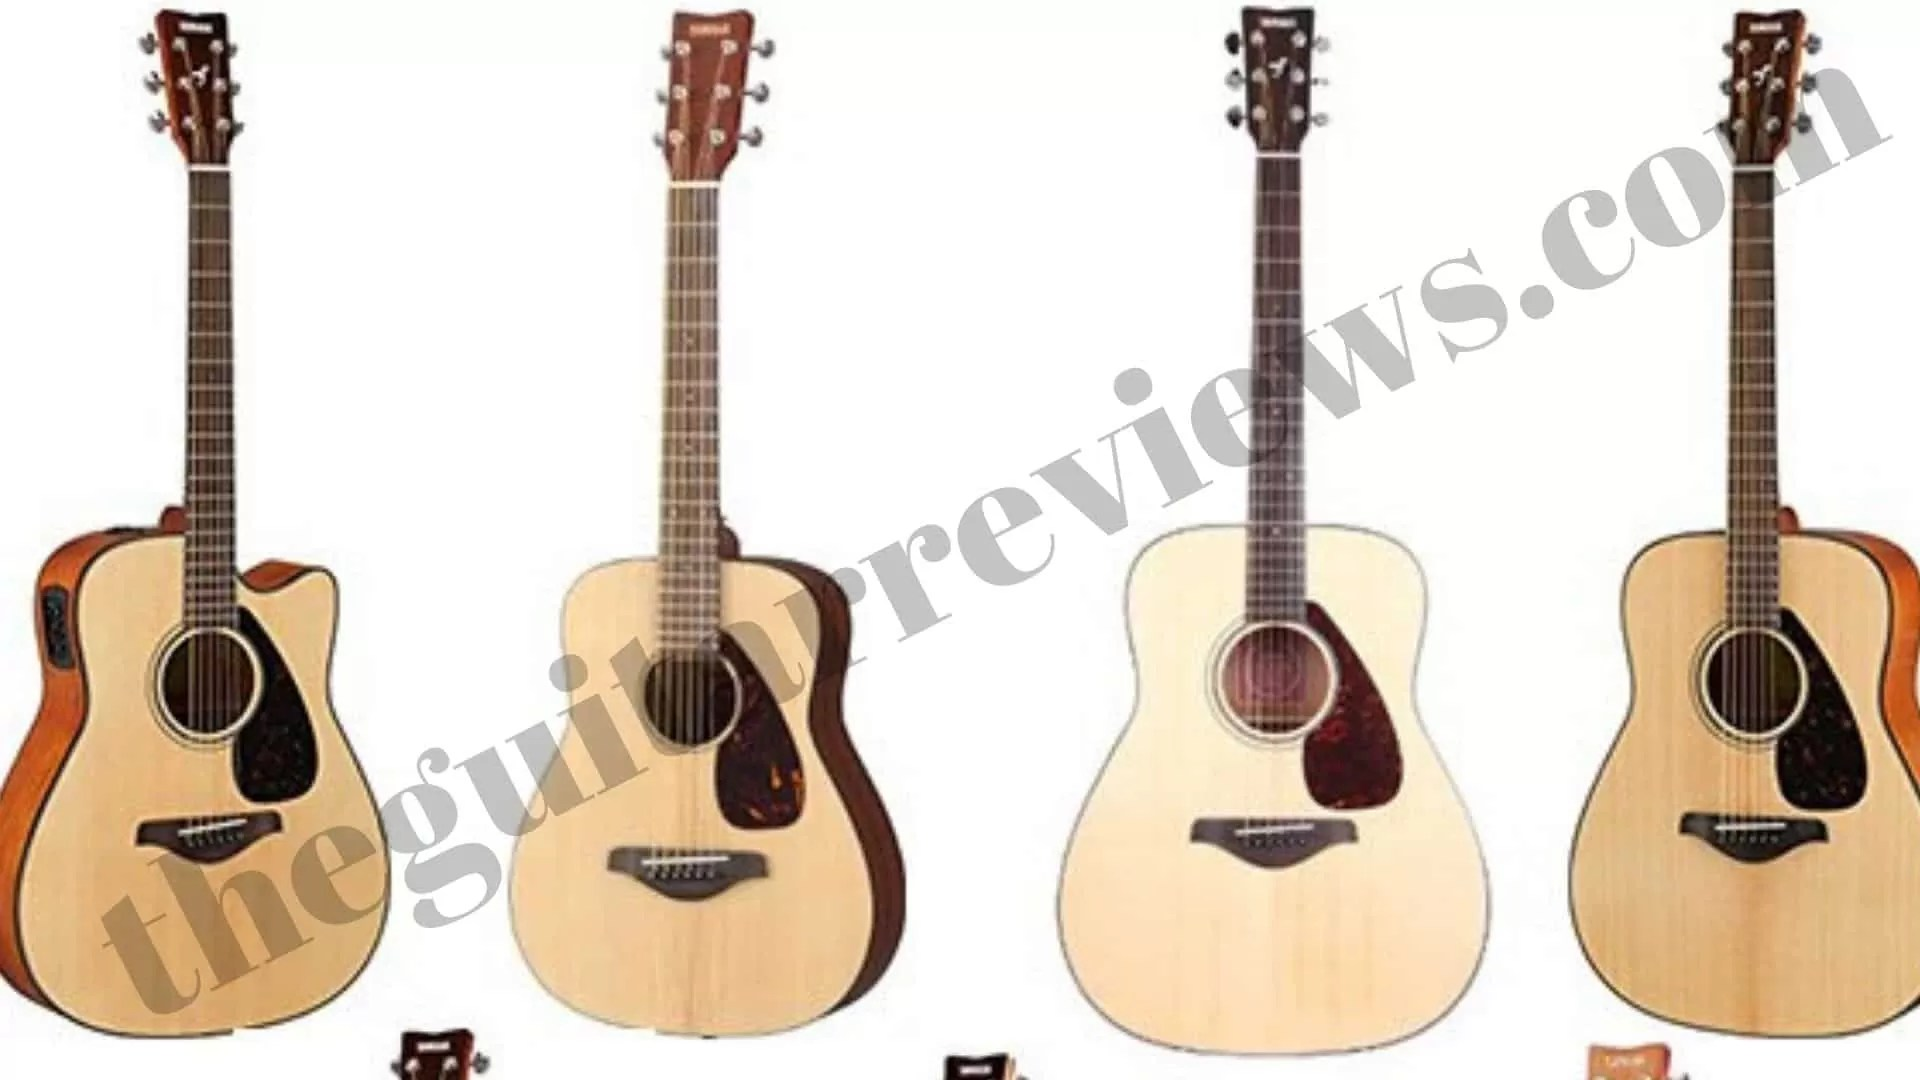 Top 5 Best Yamaha Acoustic Guitars Ever Made for Beginners